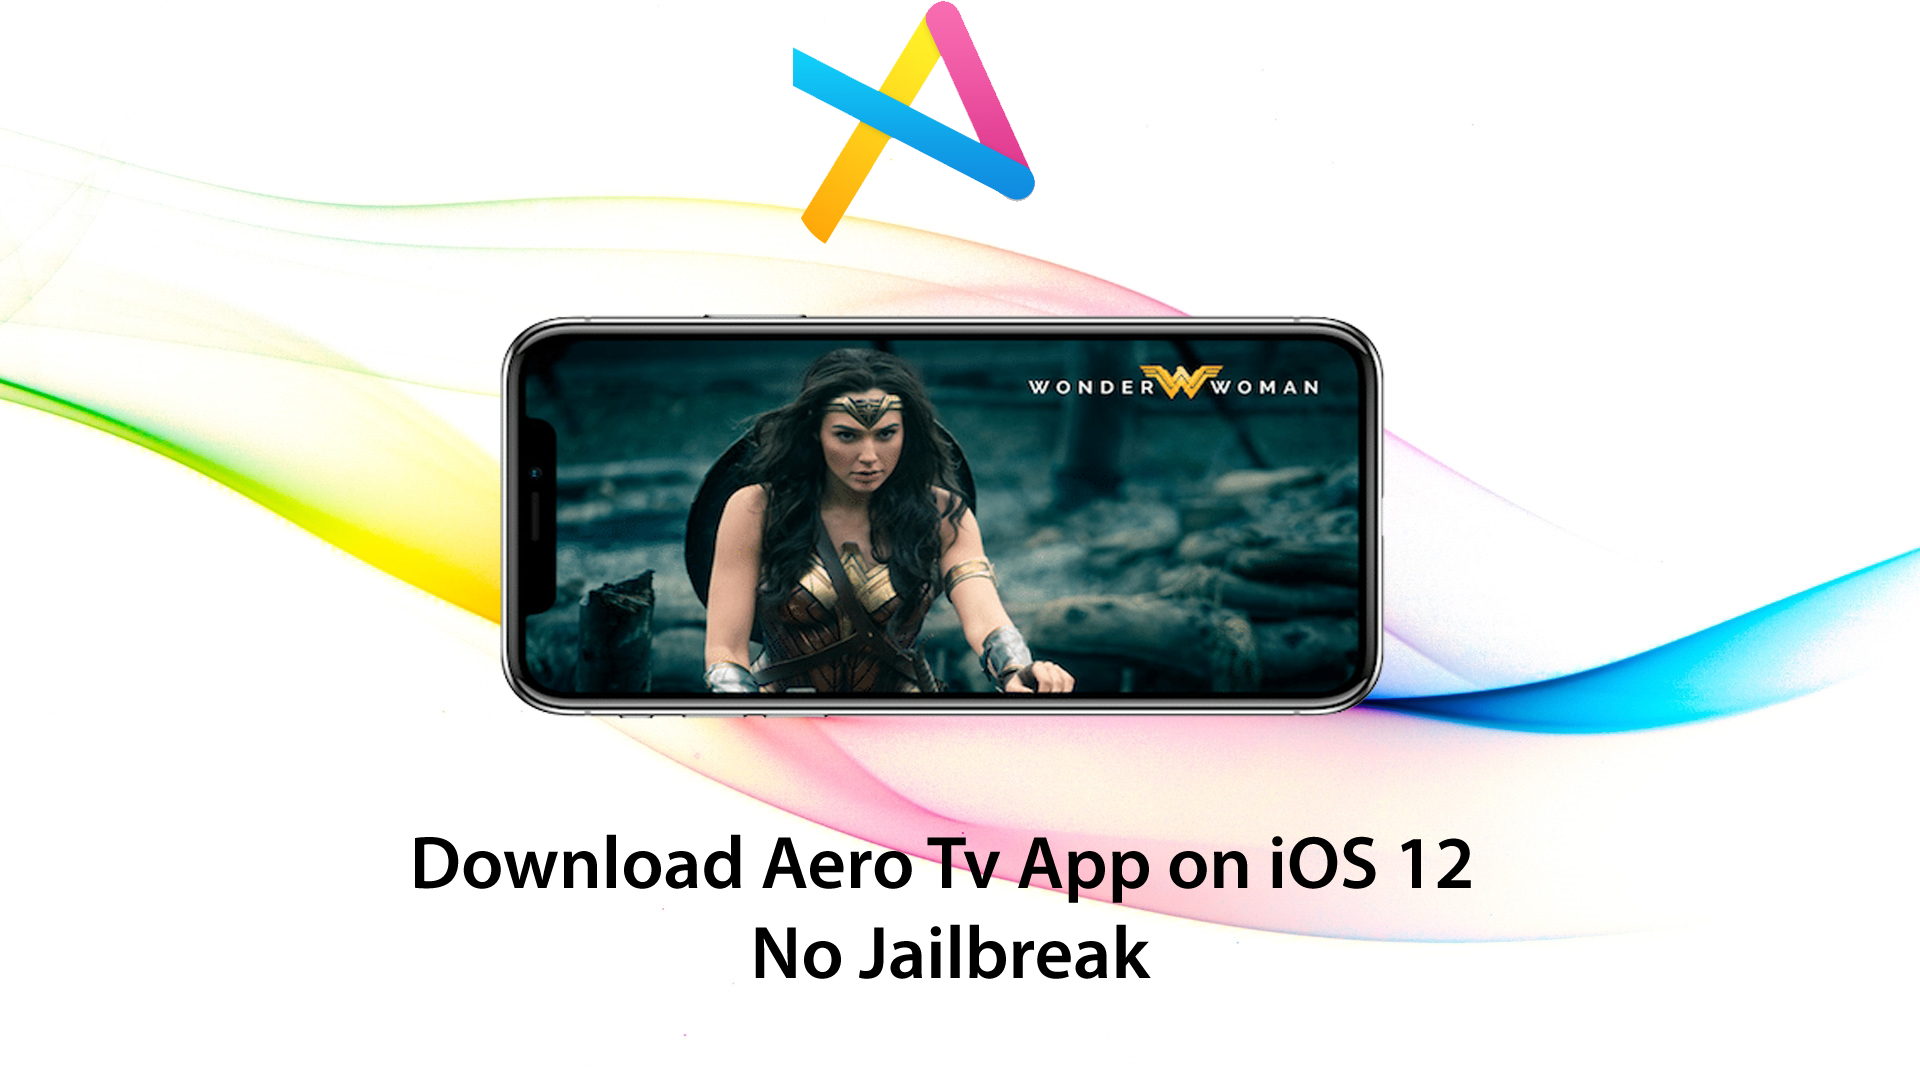 How To Download Aero Tv App on iOS 12 Devices Without